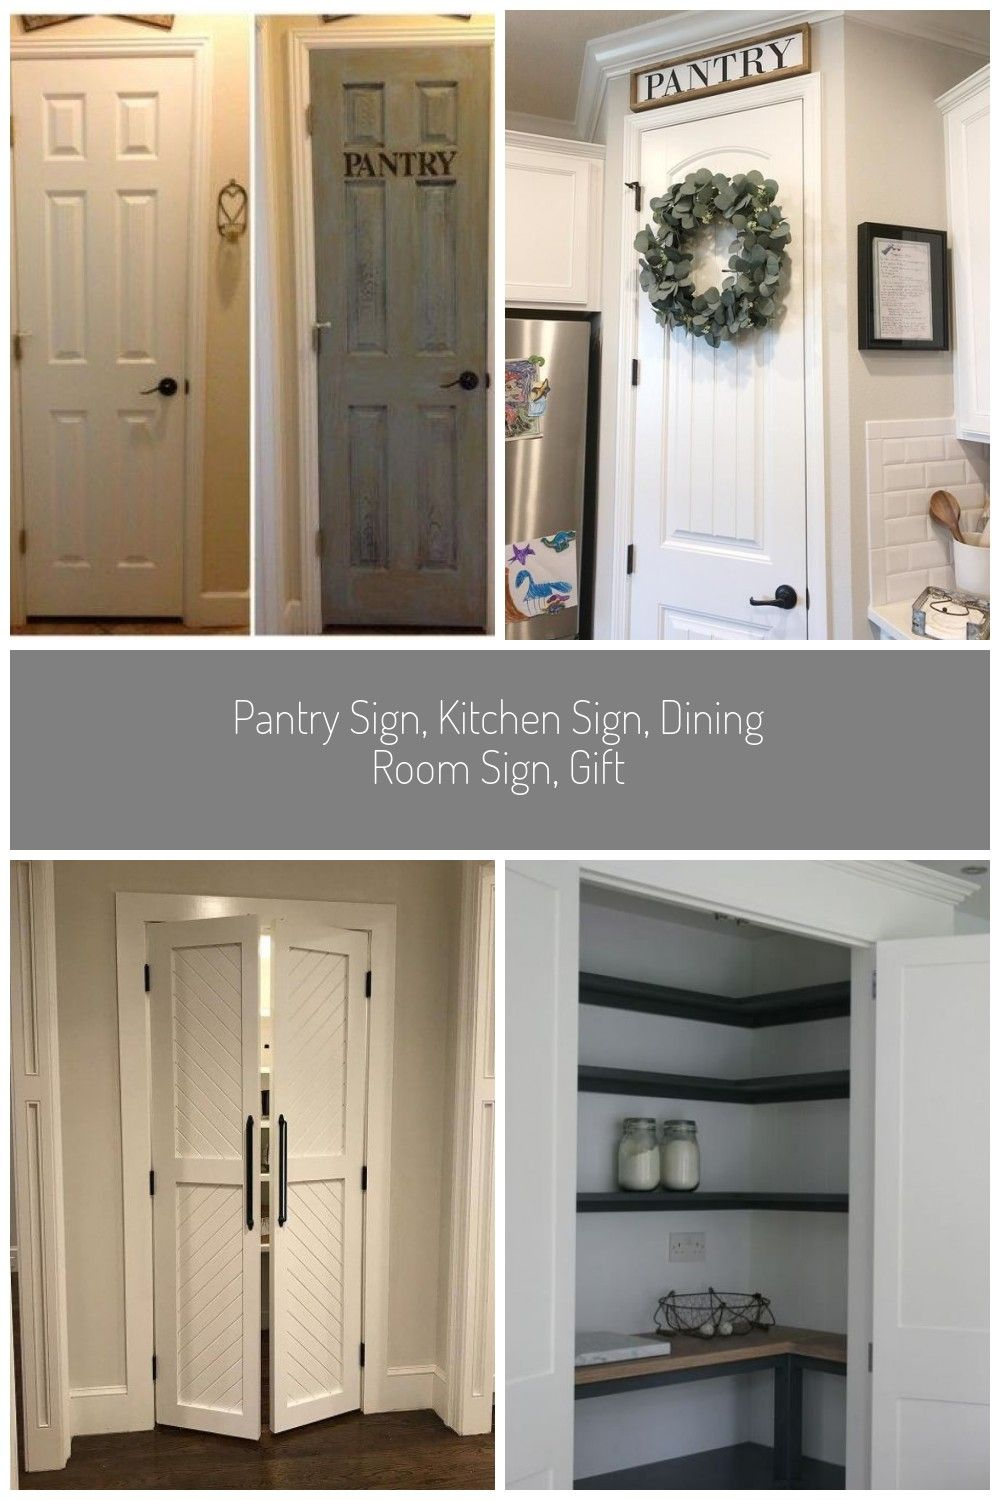 Trendy Accent Pantry Door 57 Ideas Dooradd A Cute Touch Above Your Pantry Door I Can Make It Bigger Or Smaller In 2020 Trendy Farmhouse Kitchen Pantry Sign Pantry Door